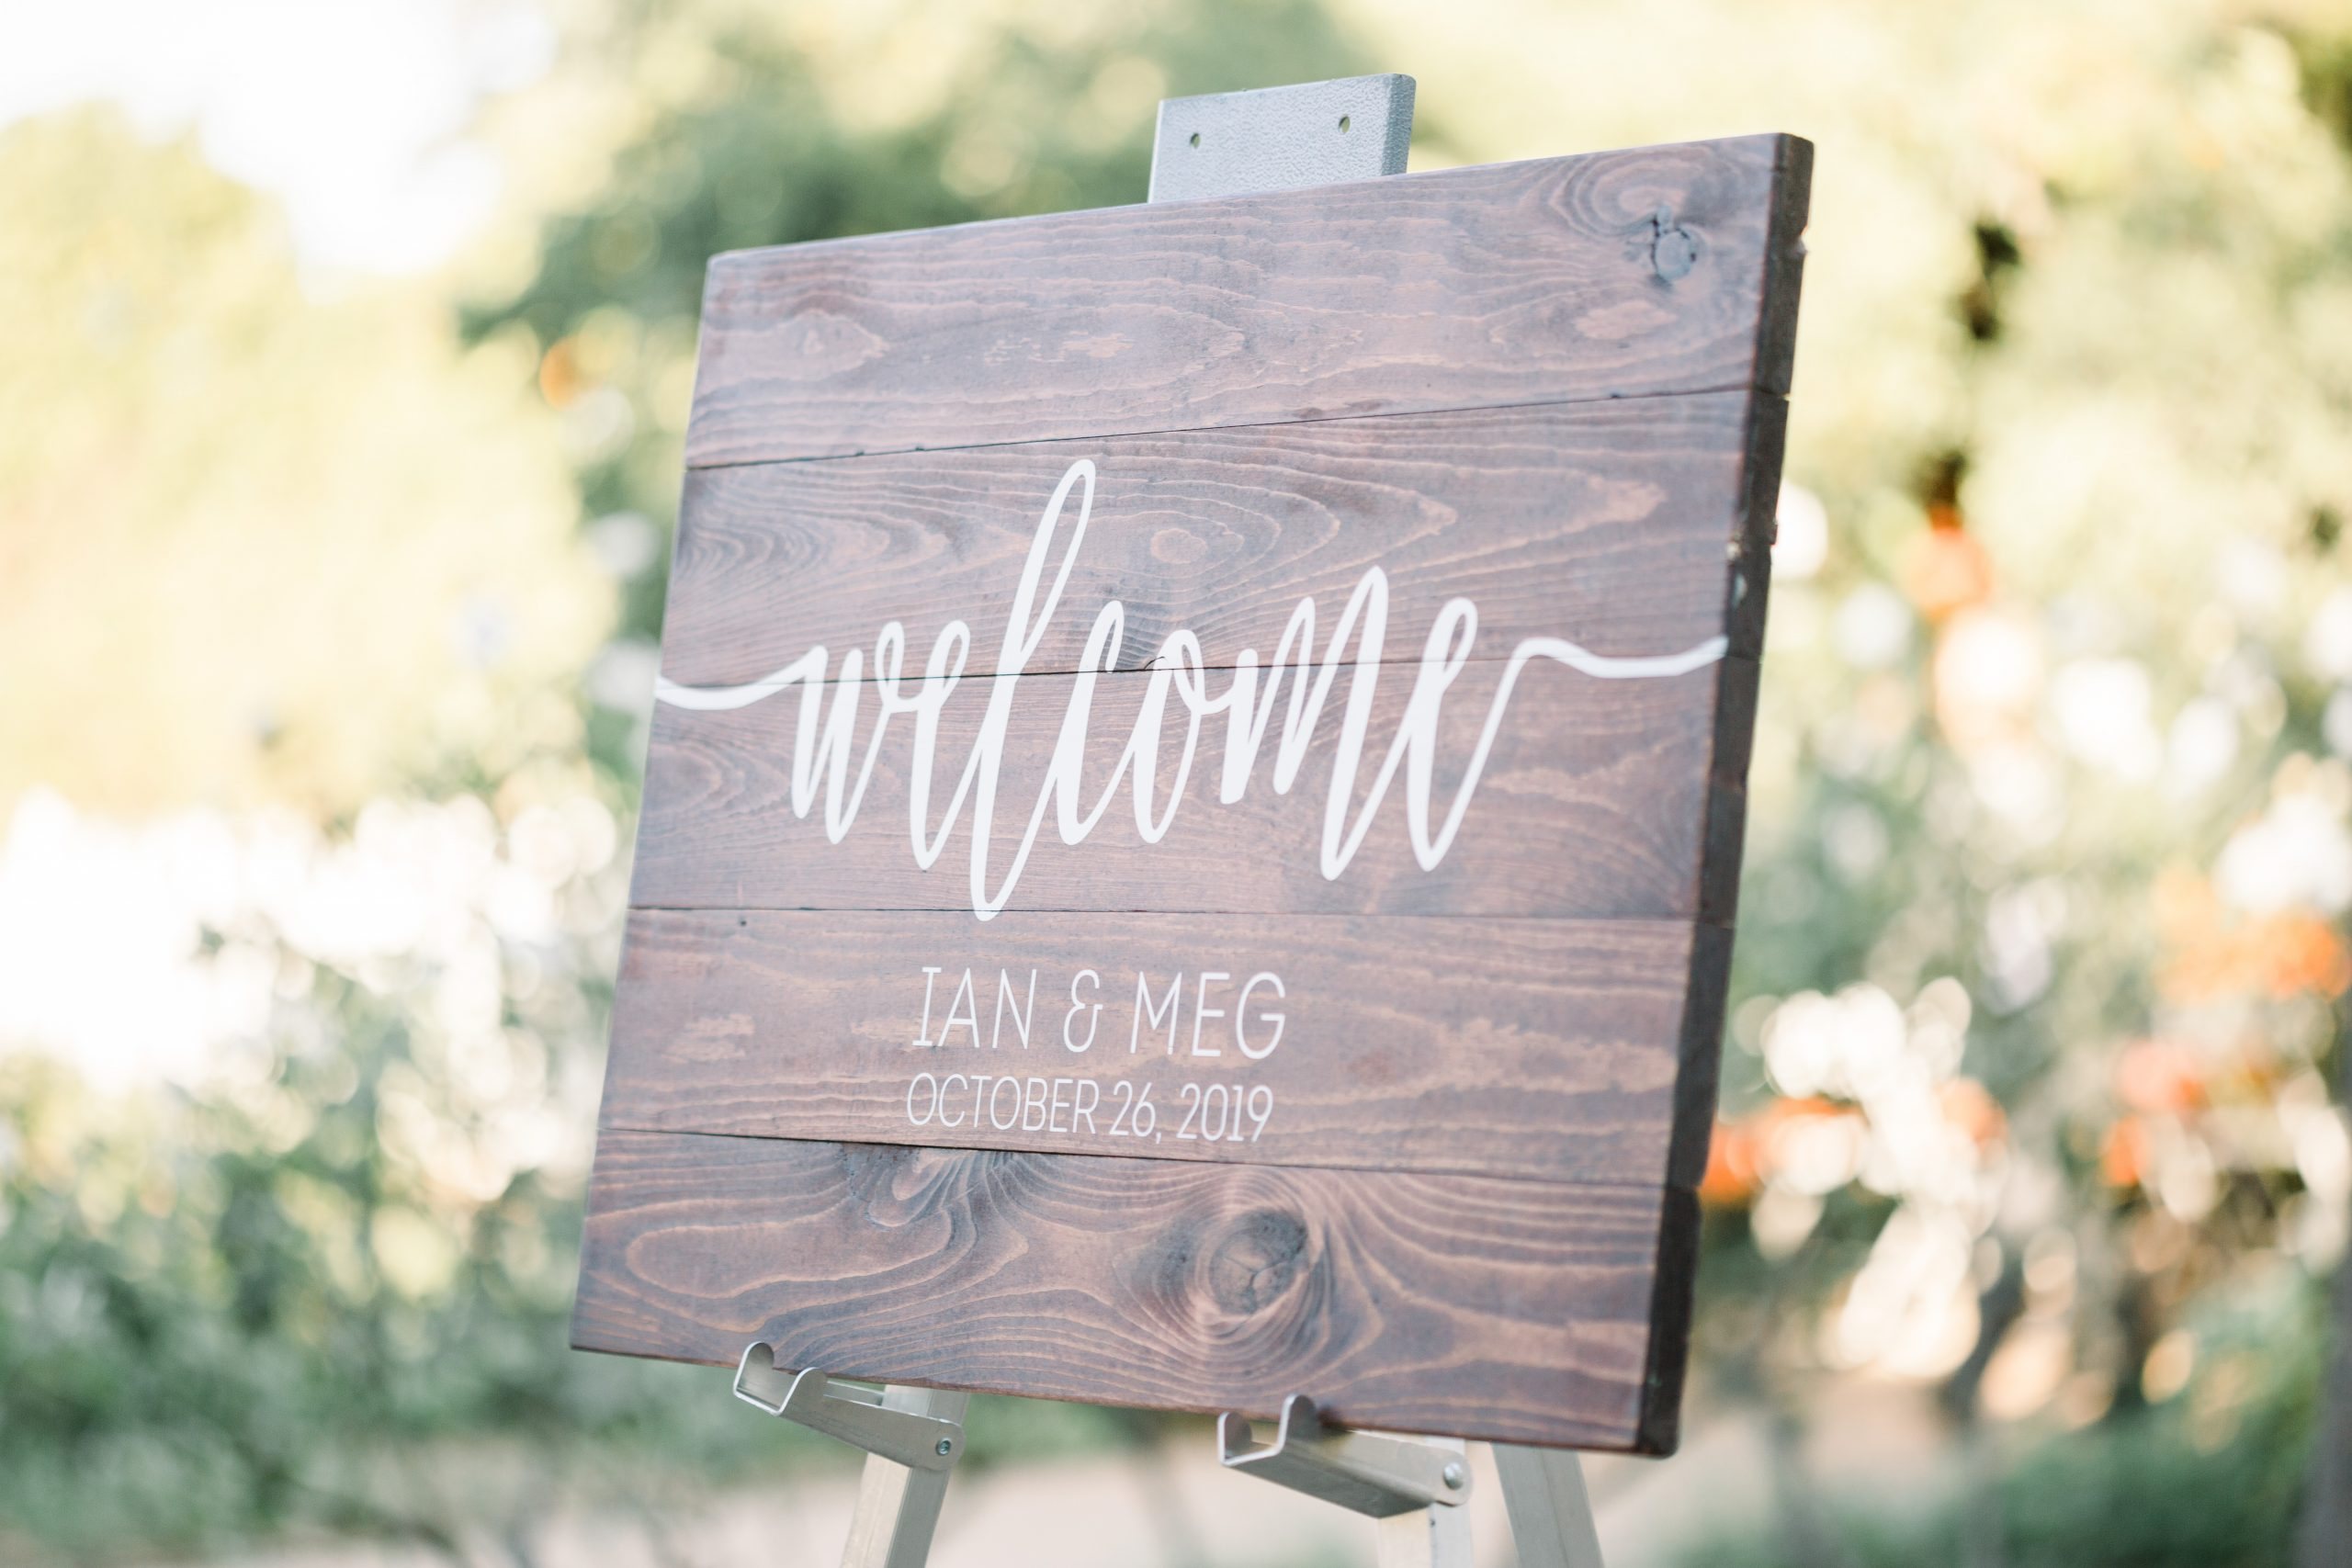 Fullerton Arboretum Weddings - Stephaniweberphotography.com